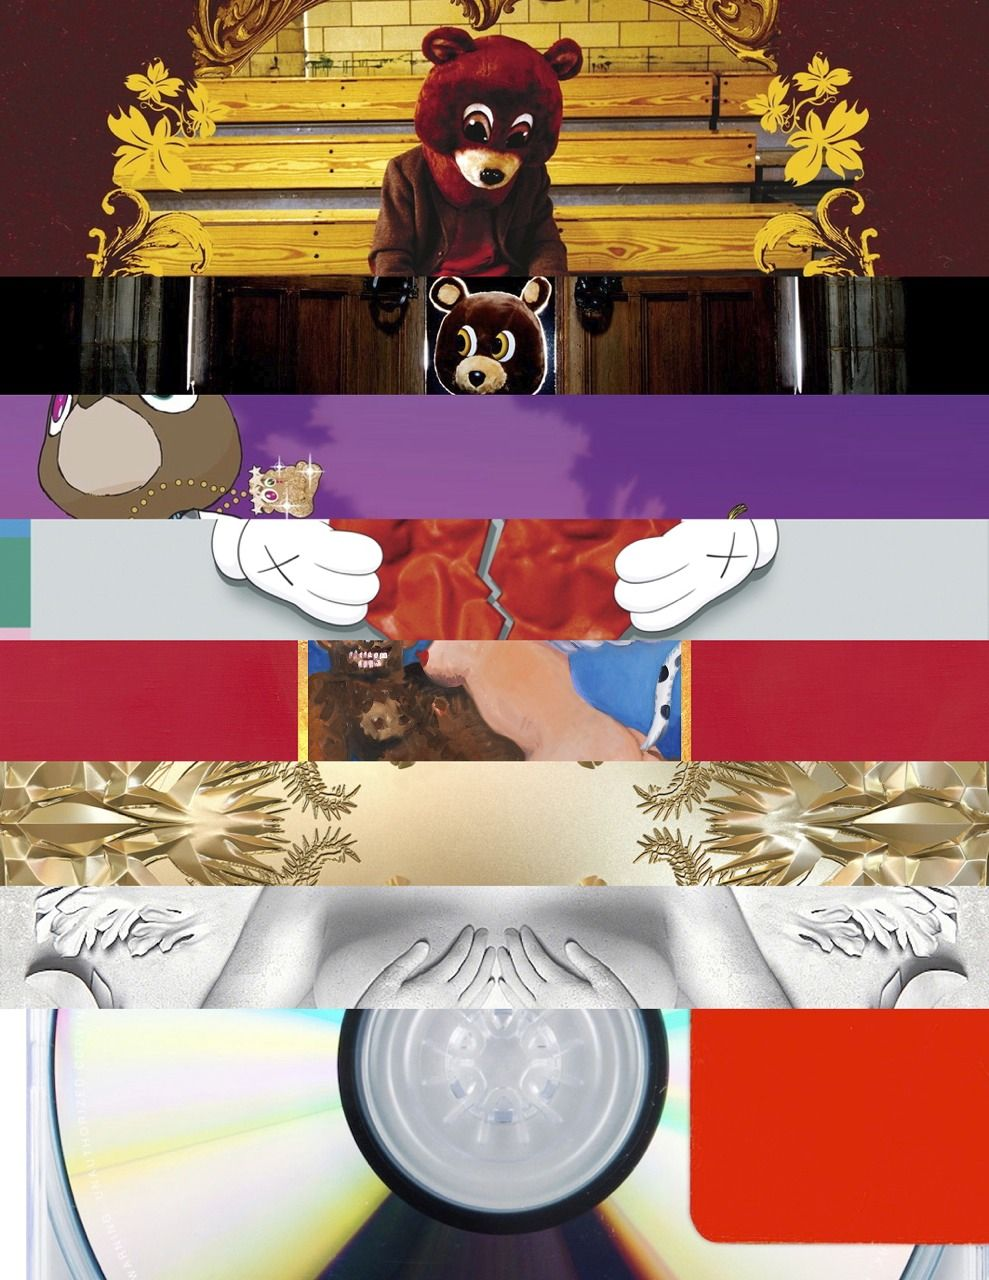 Kanye West College Dropout Graduation 808 Hearbreak My Beautiful Dark Twisted Fantasy W Kanye West Albums Beautiful Dark Twisted Fantasy My Favorite Music